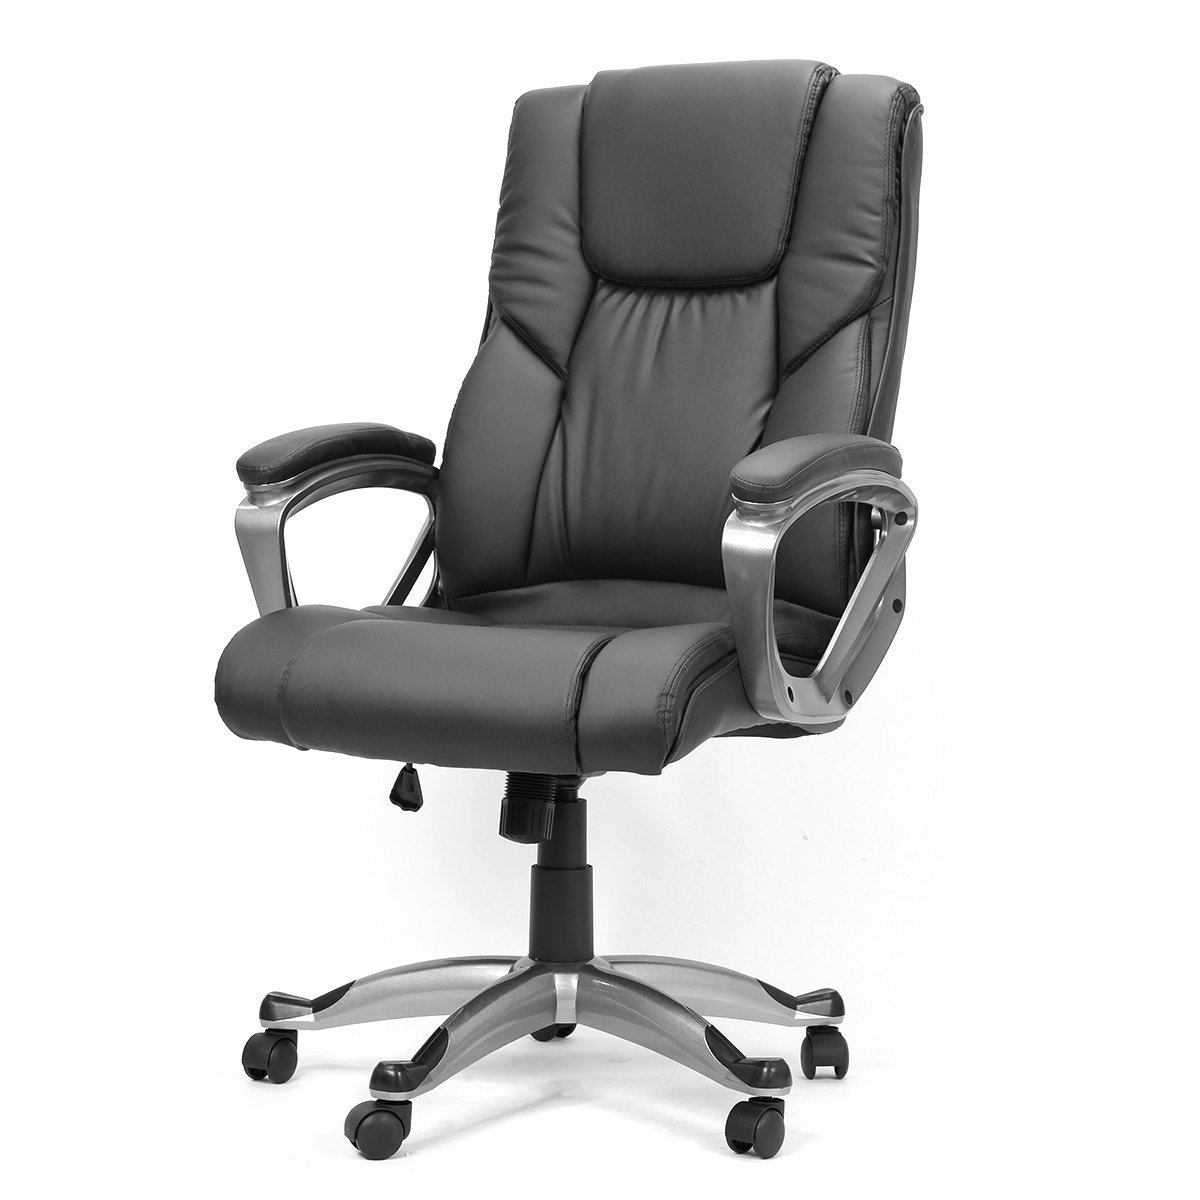 Executive Office Furniture: Big And Tall Executive Leather Office Chairs